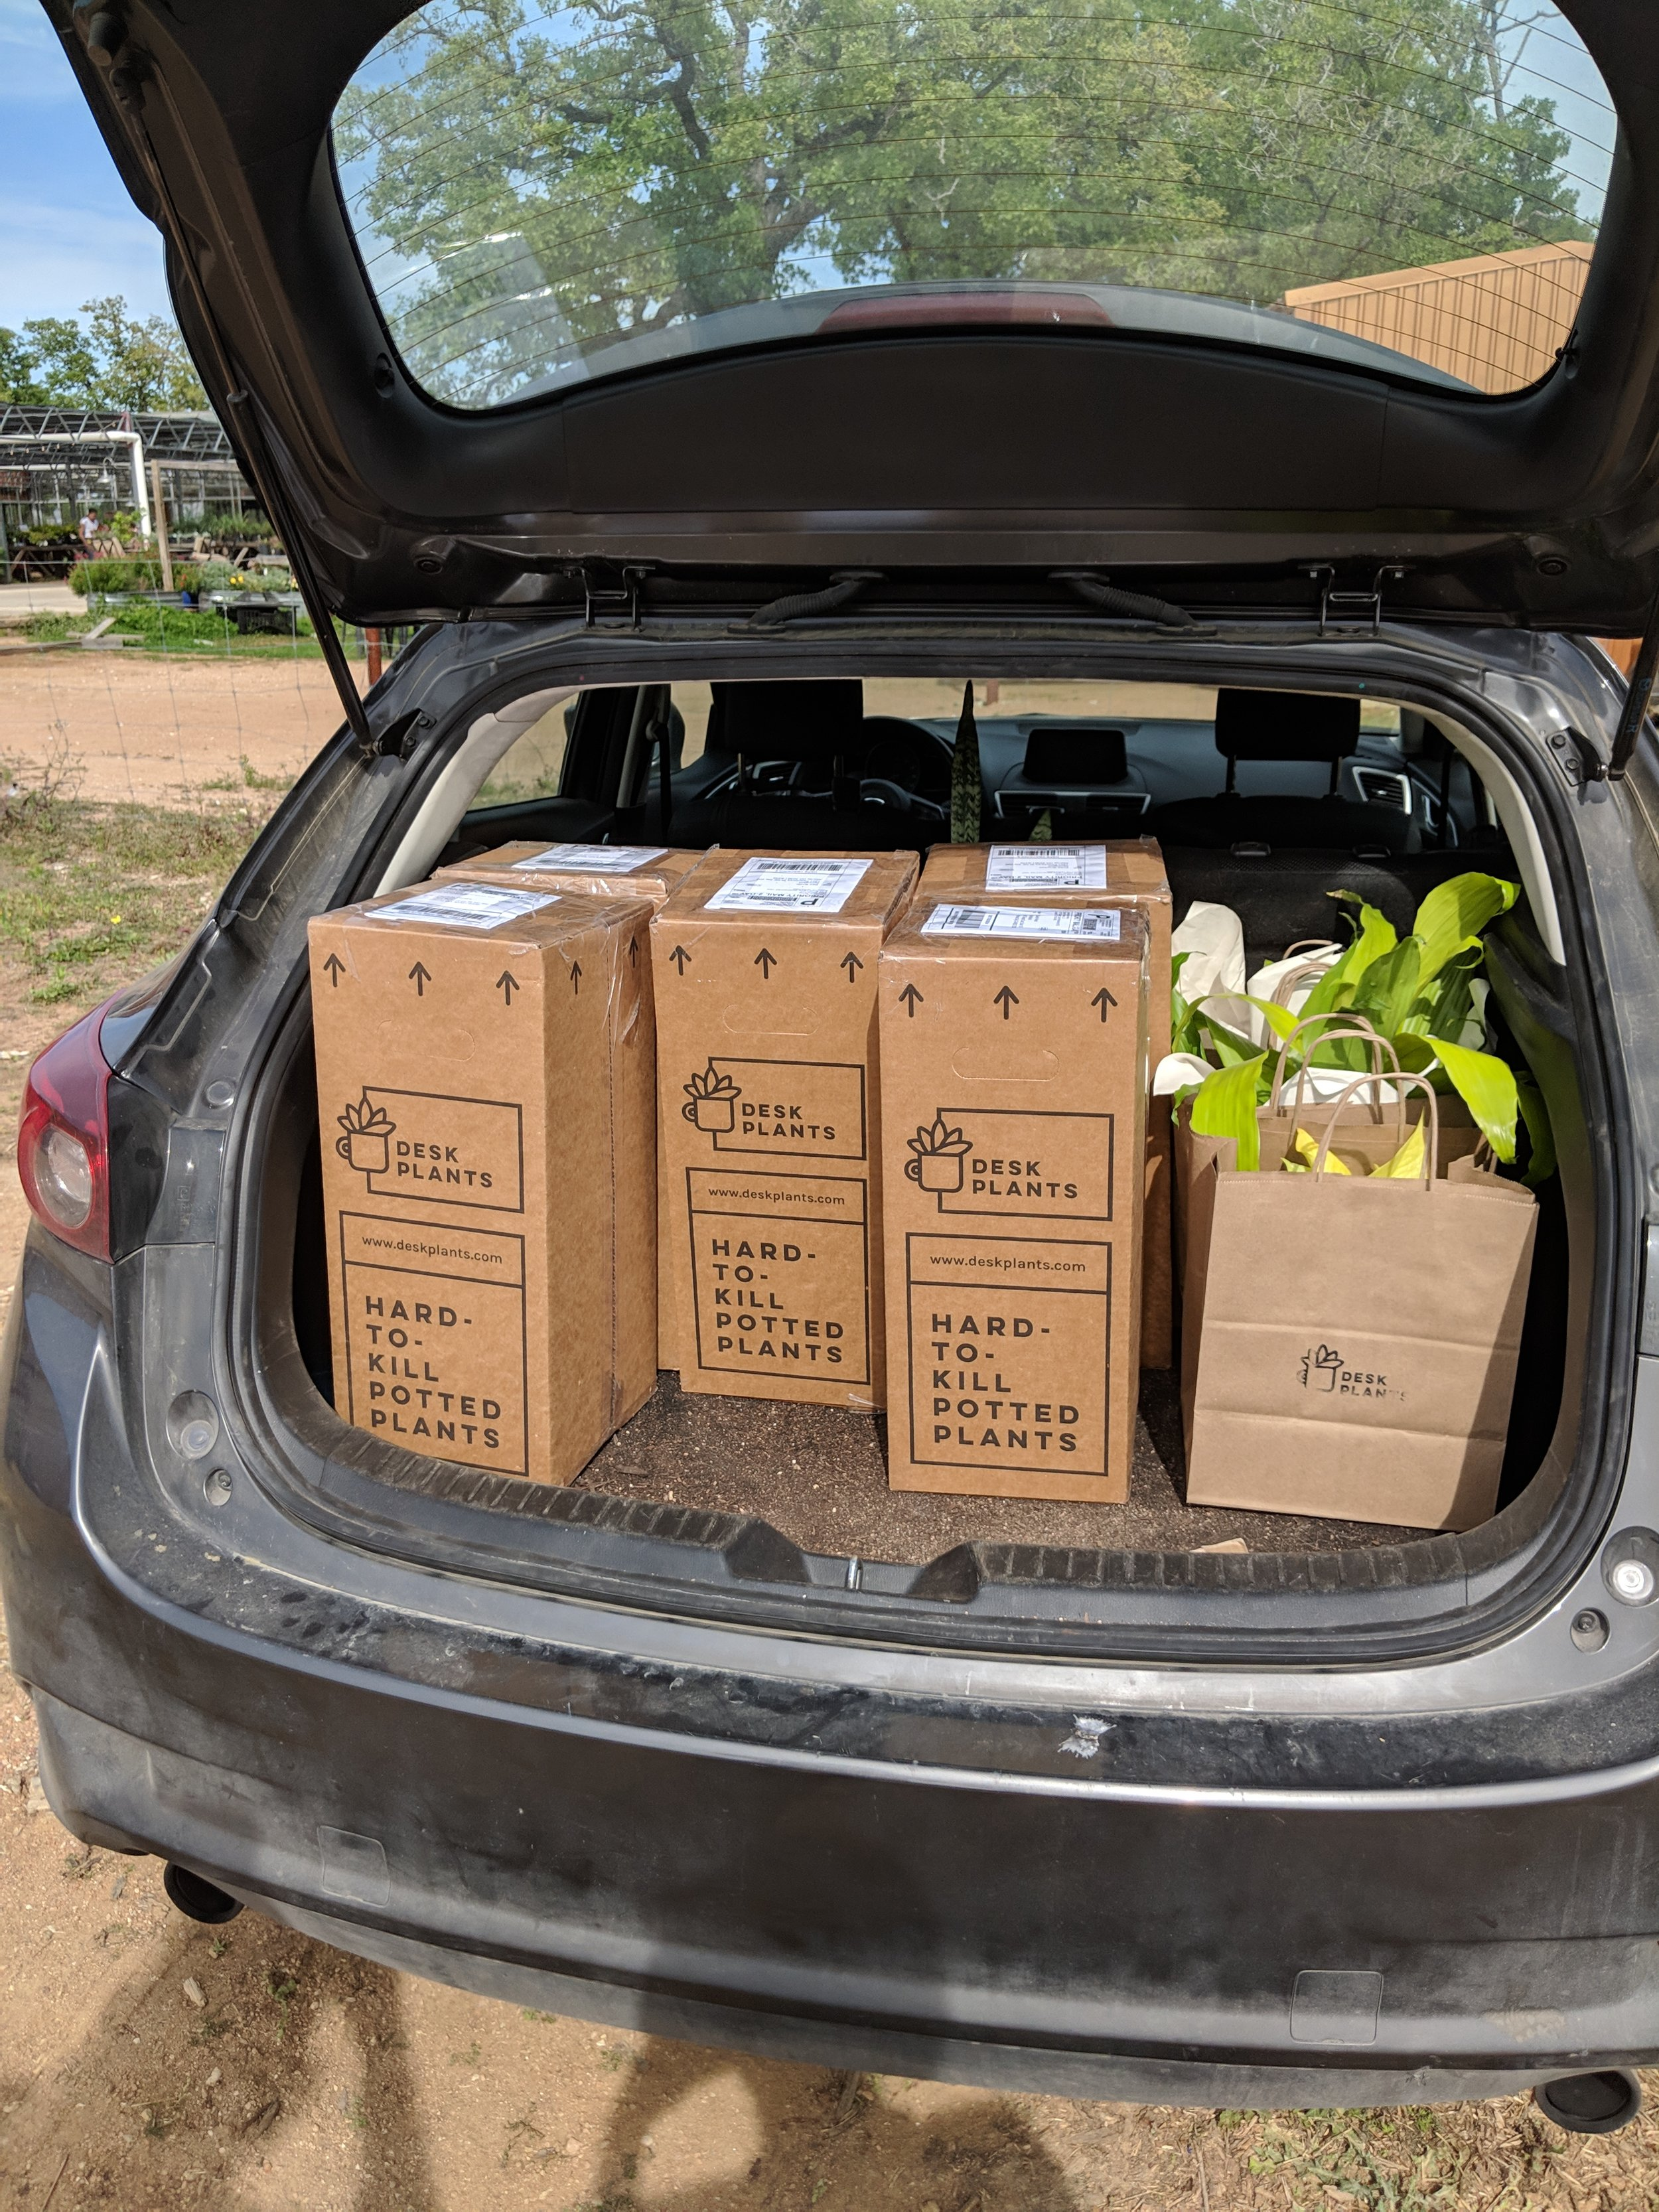 Plants on their way to the Post Office! Check out that packaging!